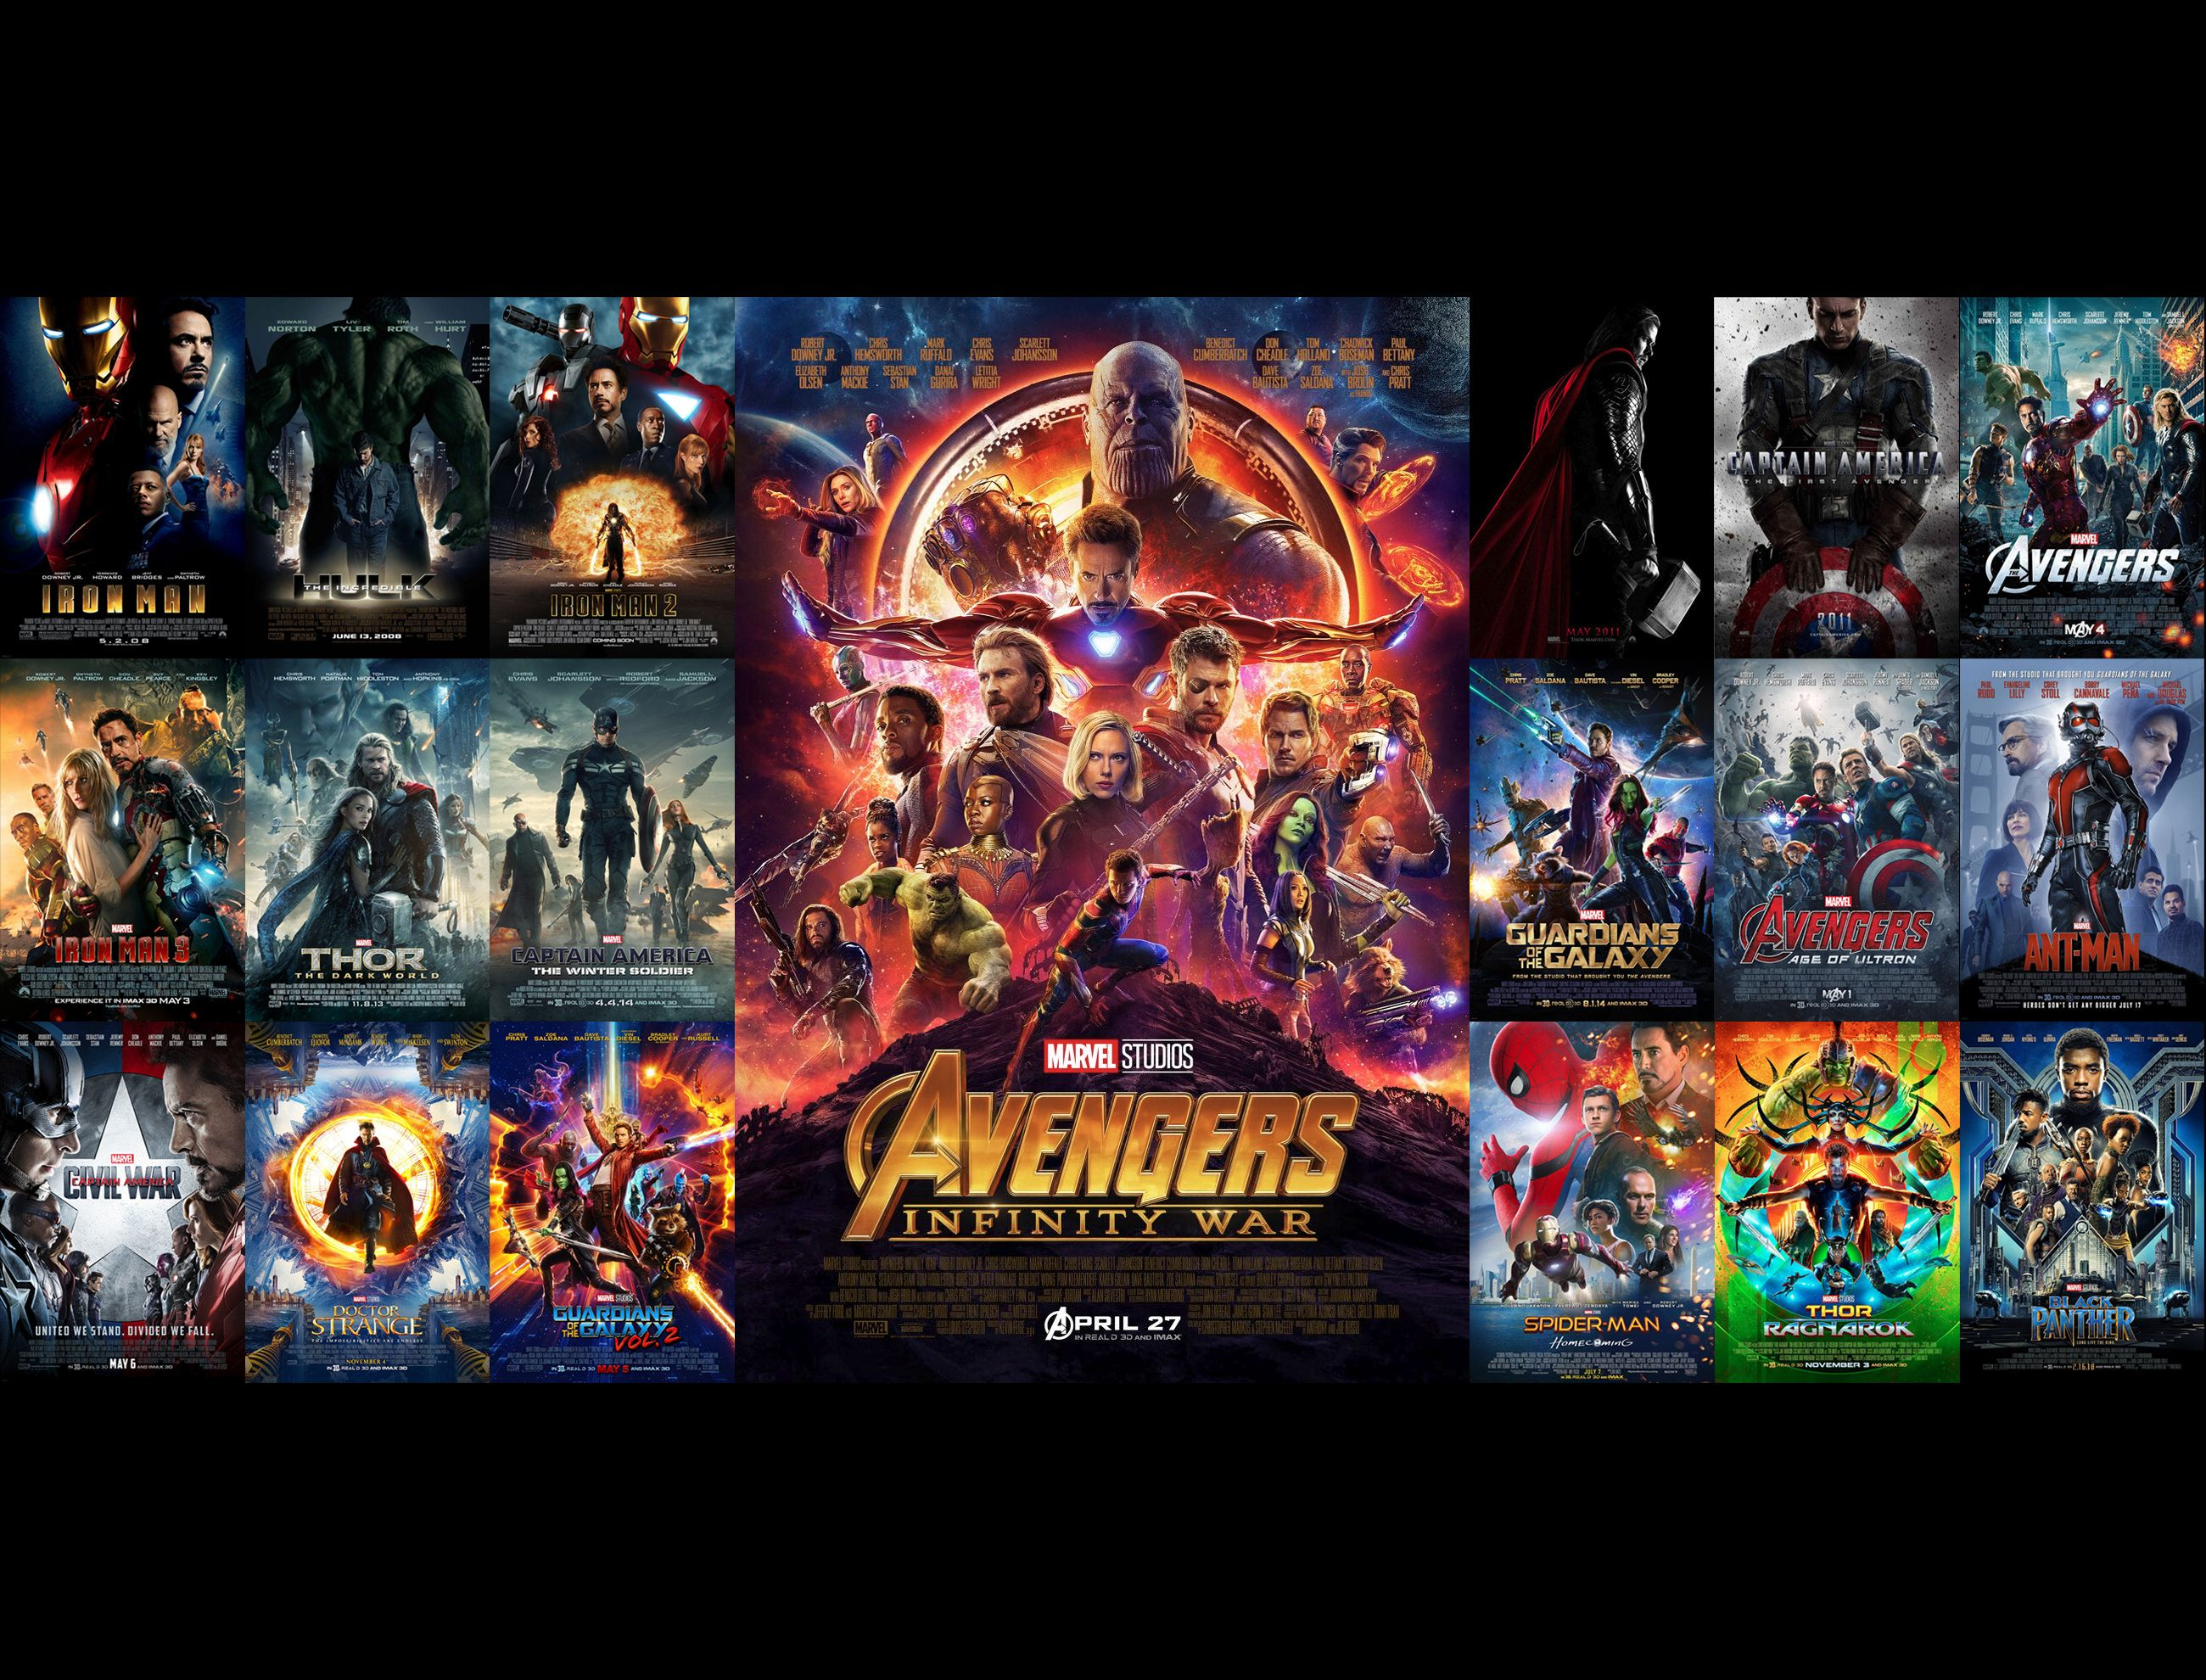 Simple Wallpaper I made with the 19 posters of the MCU